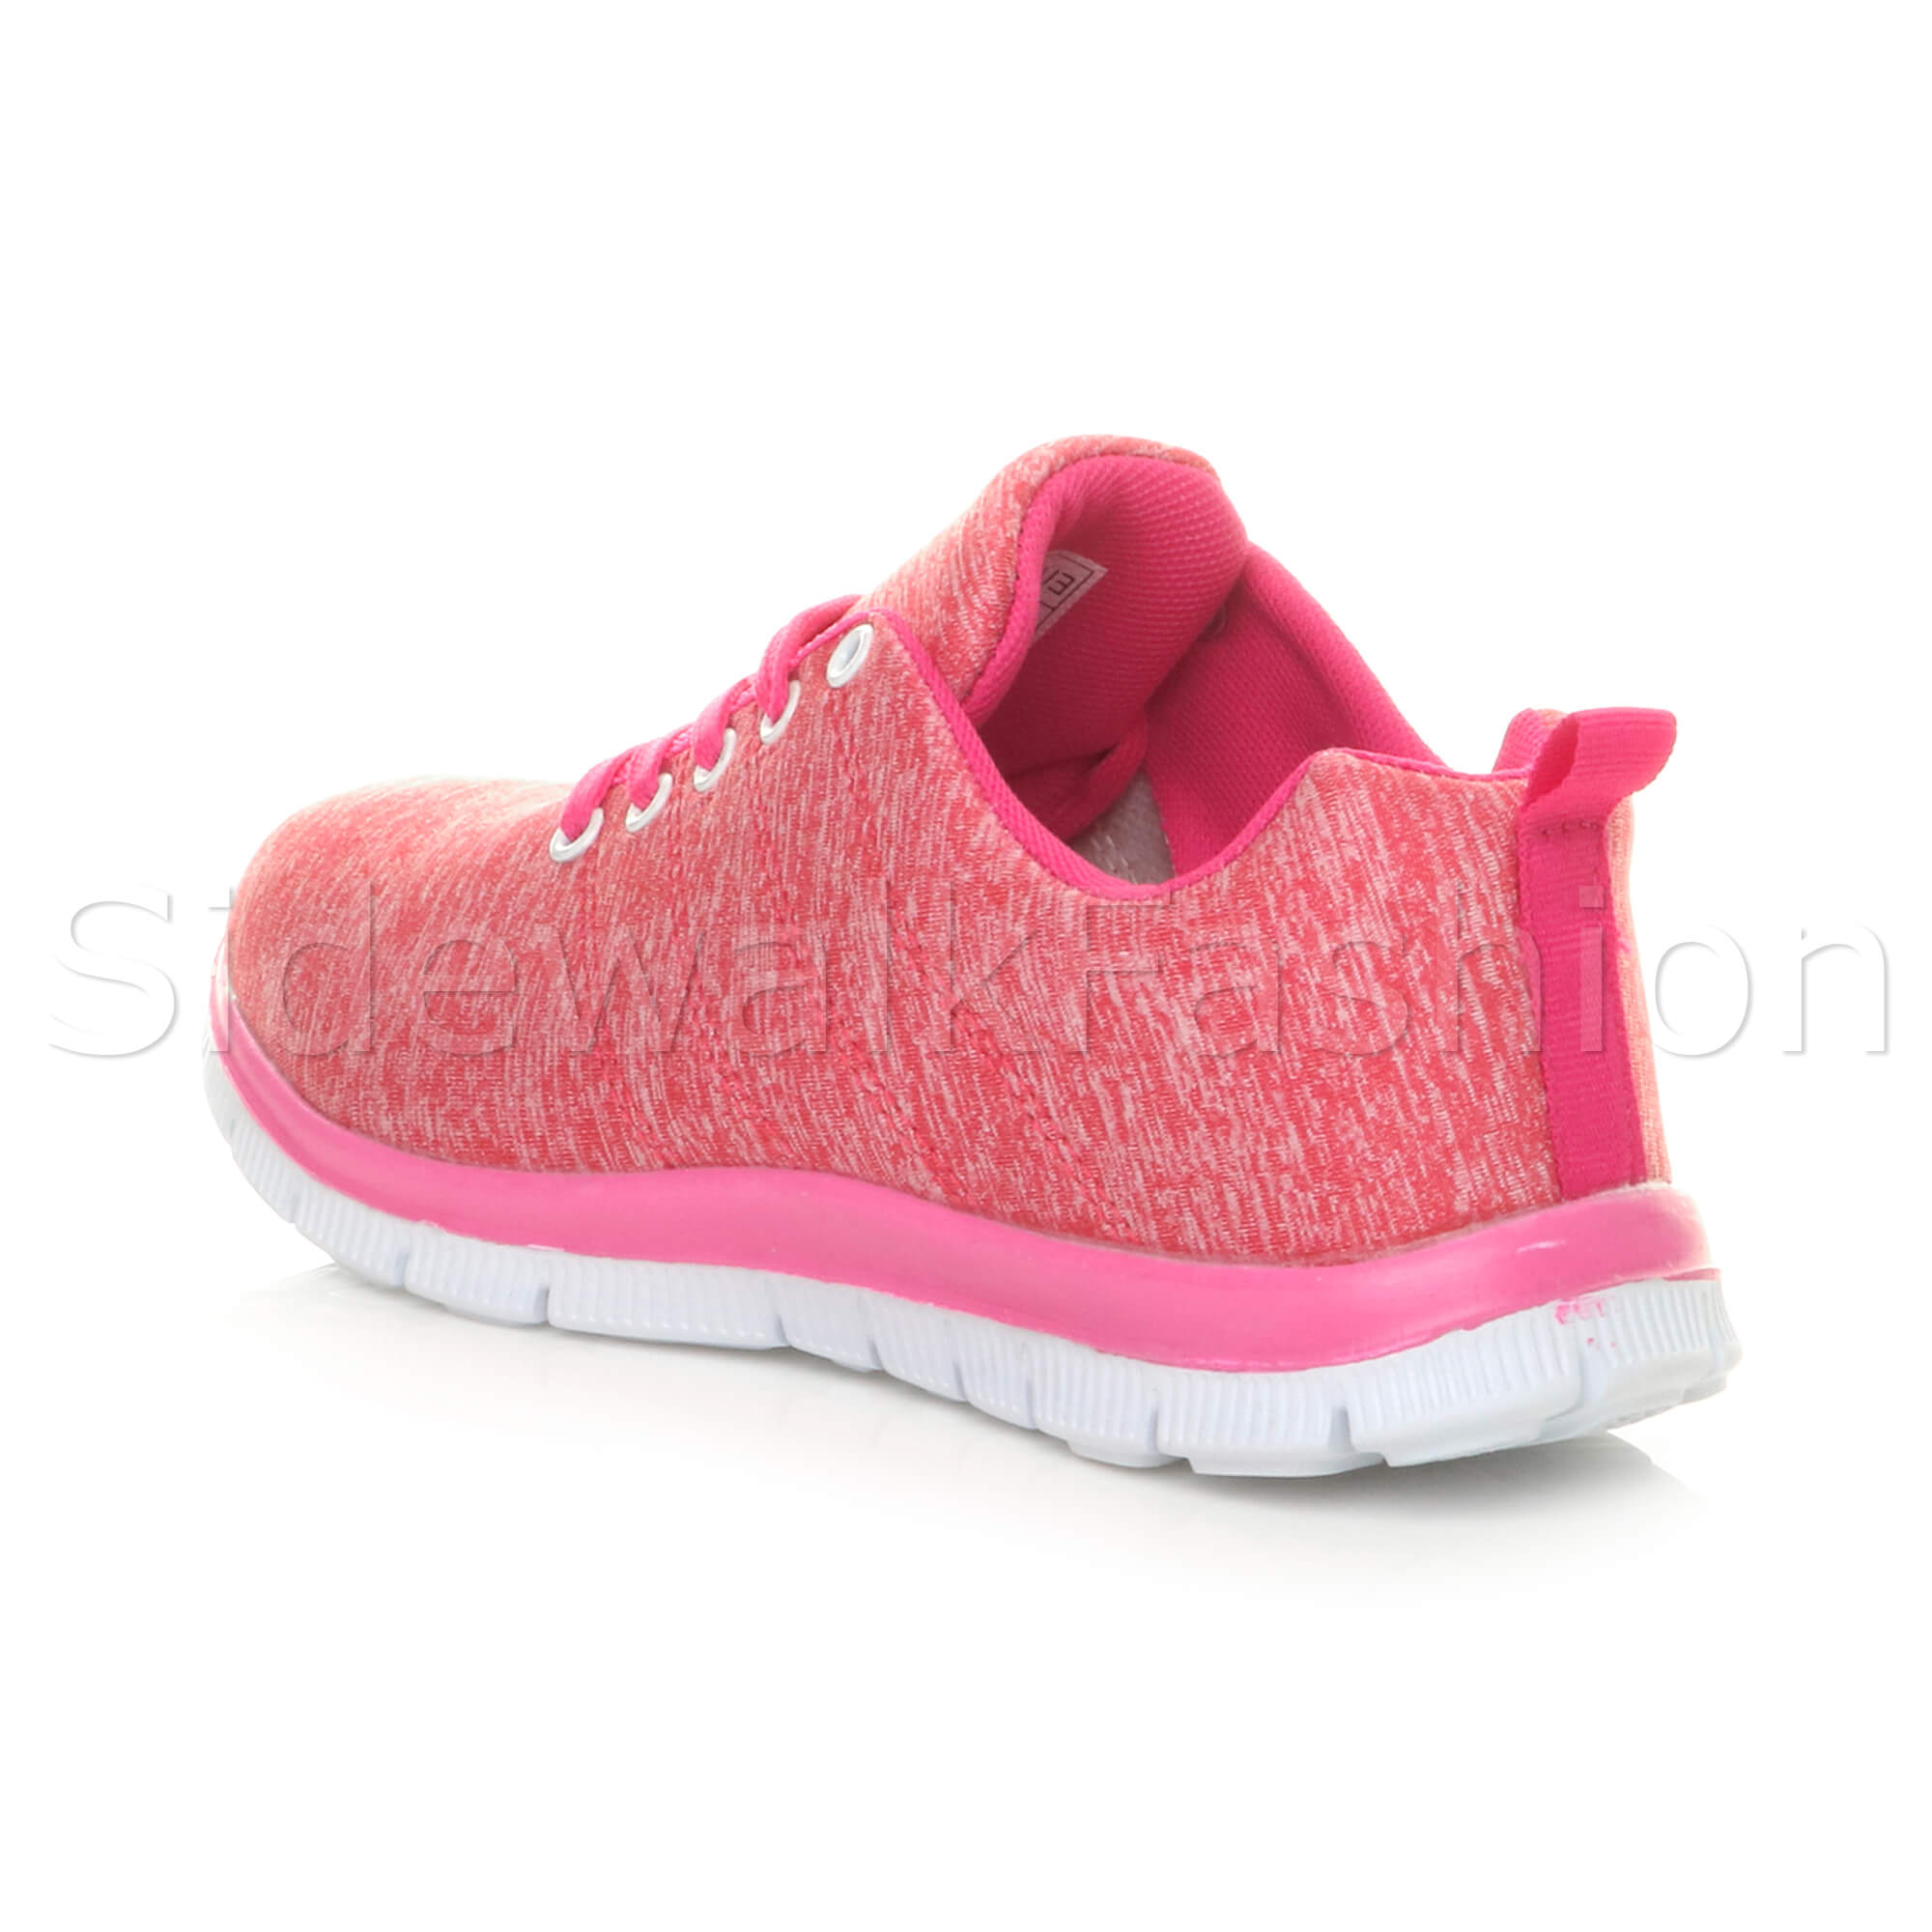 Womens-ladies-comfort-memory-foam-lace-up-trainers-activewear-sneakers-gym-shoes thumbnail 39